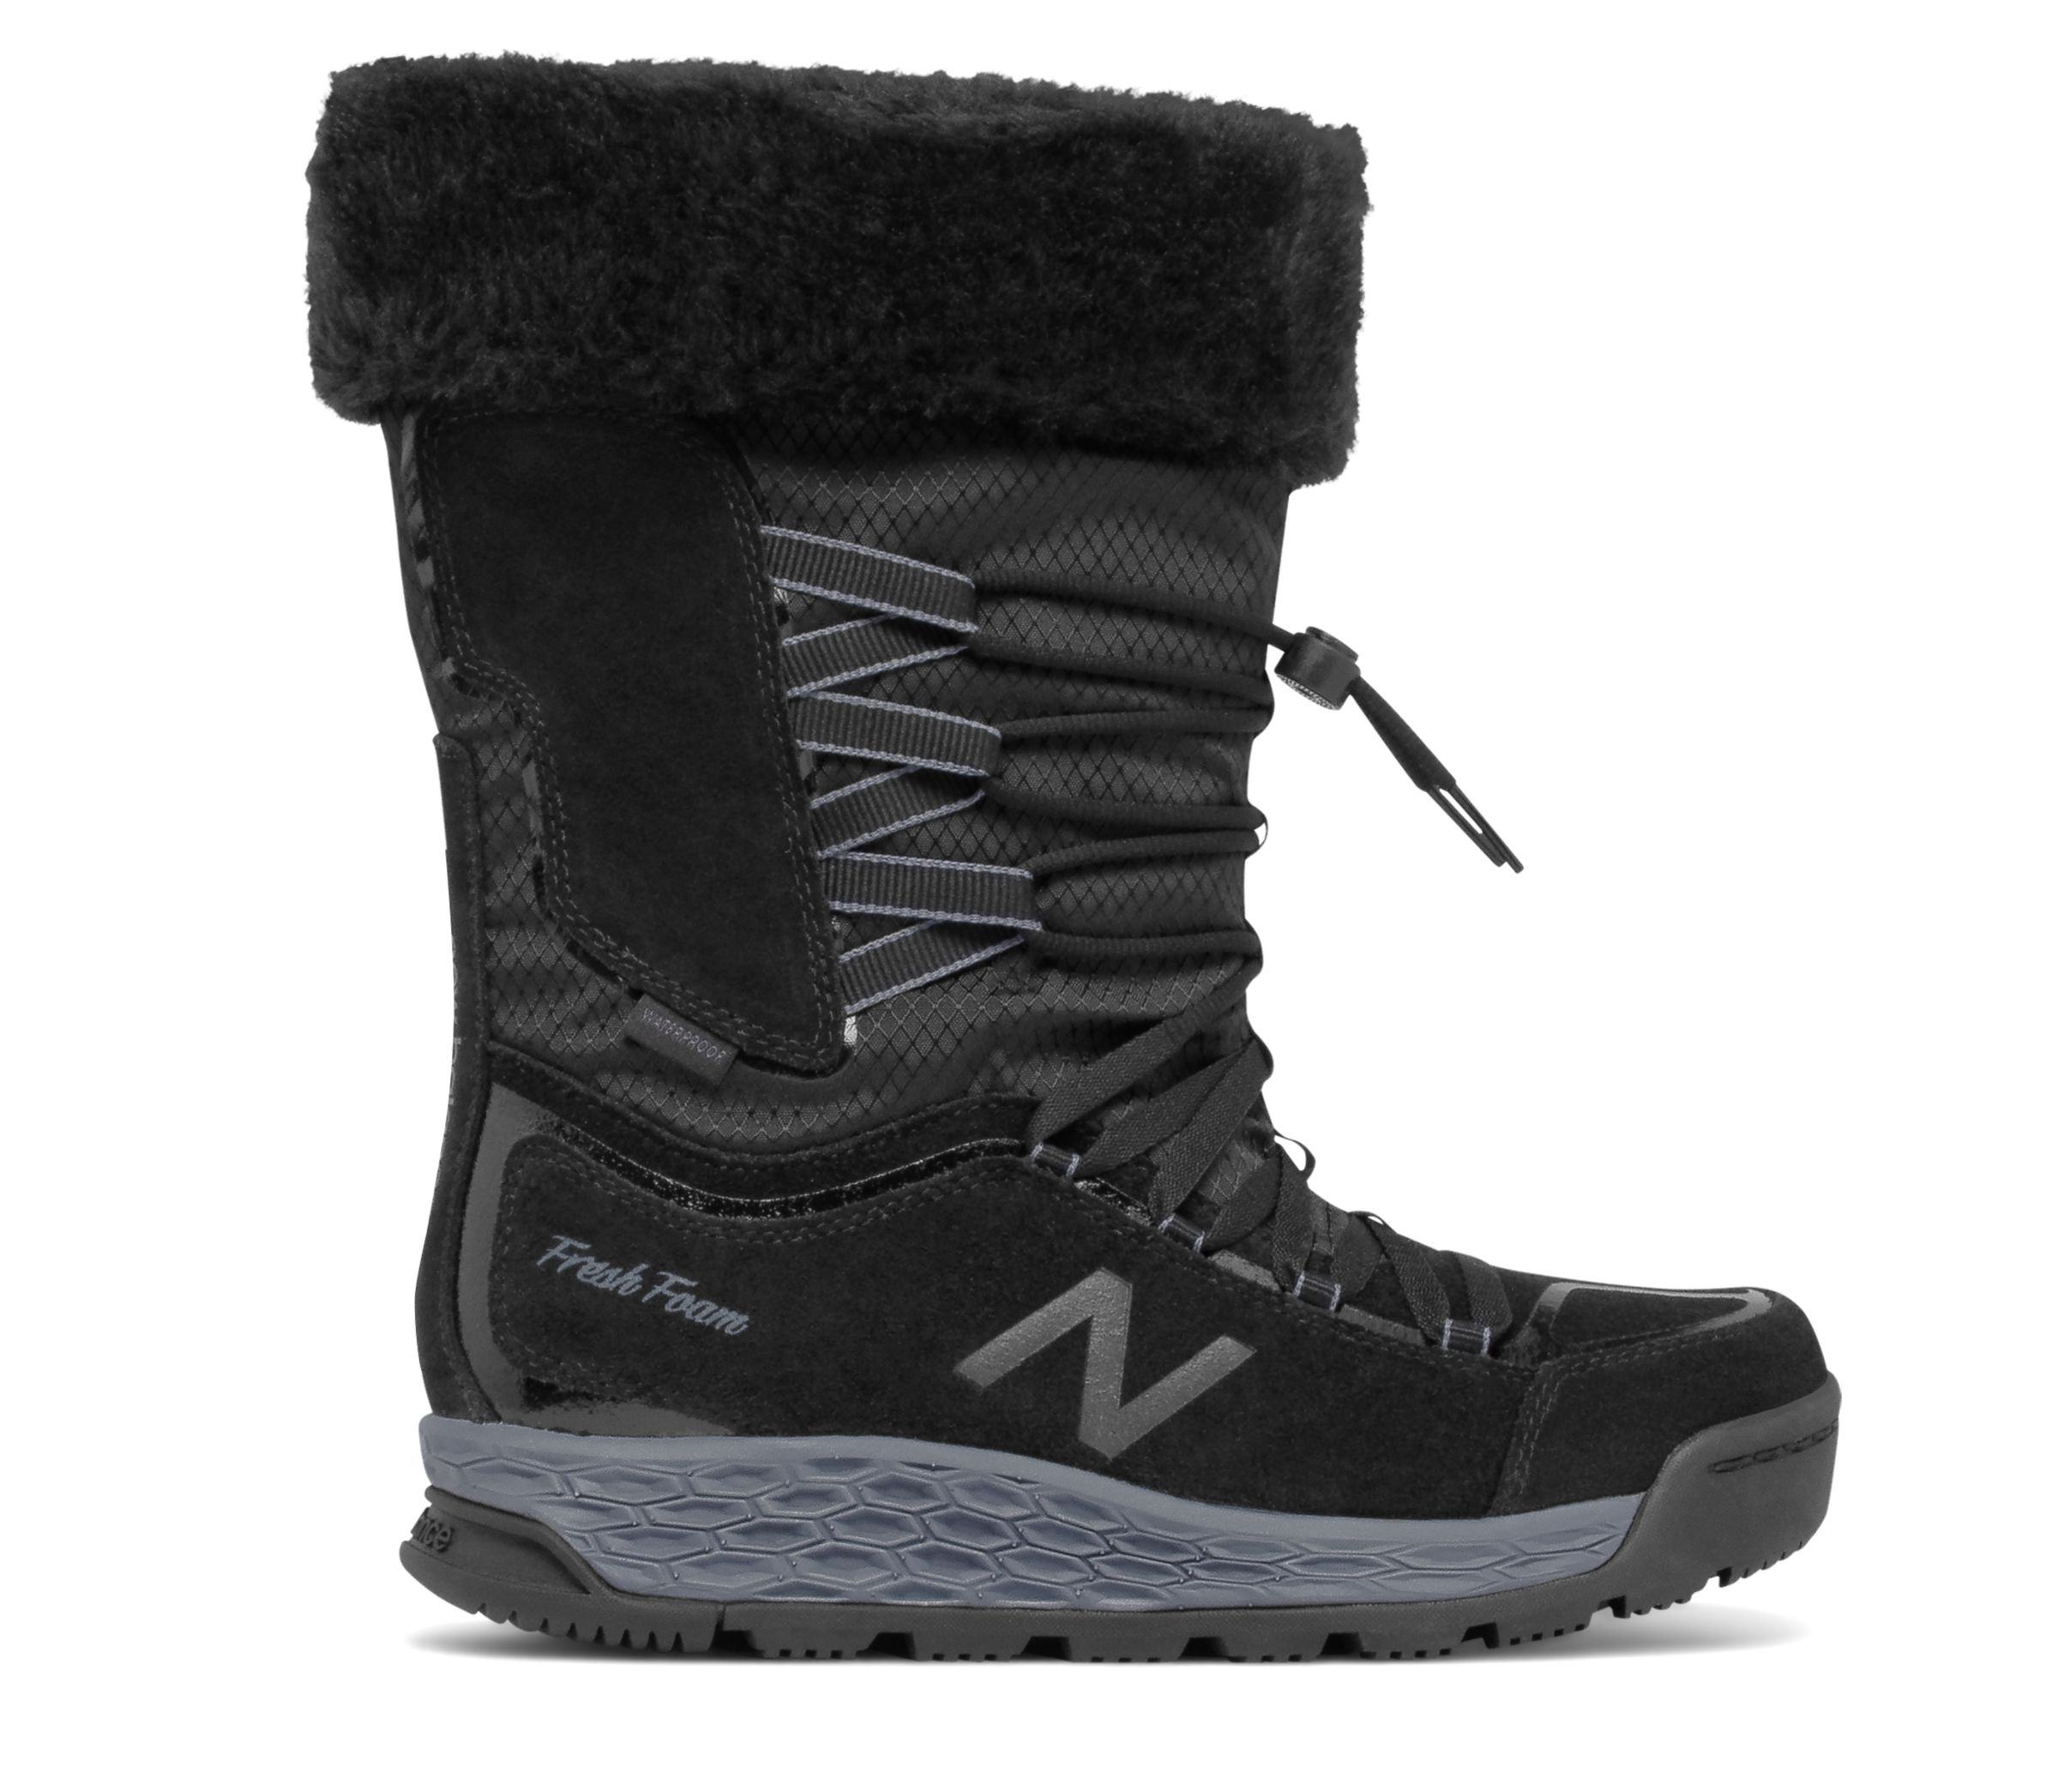 New Balance : Fresh Foam 1000 Boot : Women's Hiking & Walking : BW1000BK